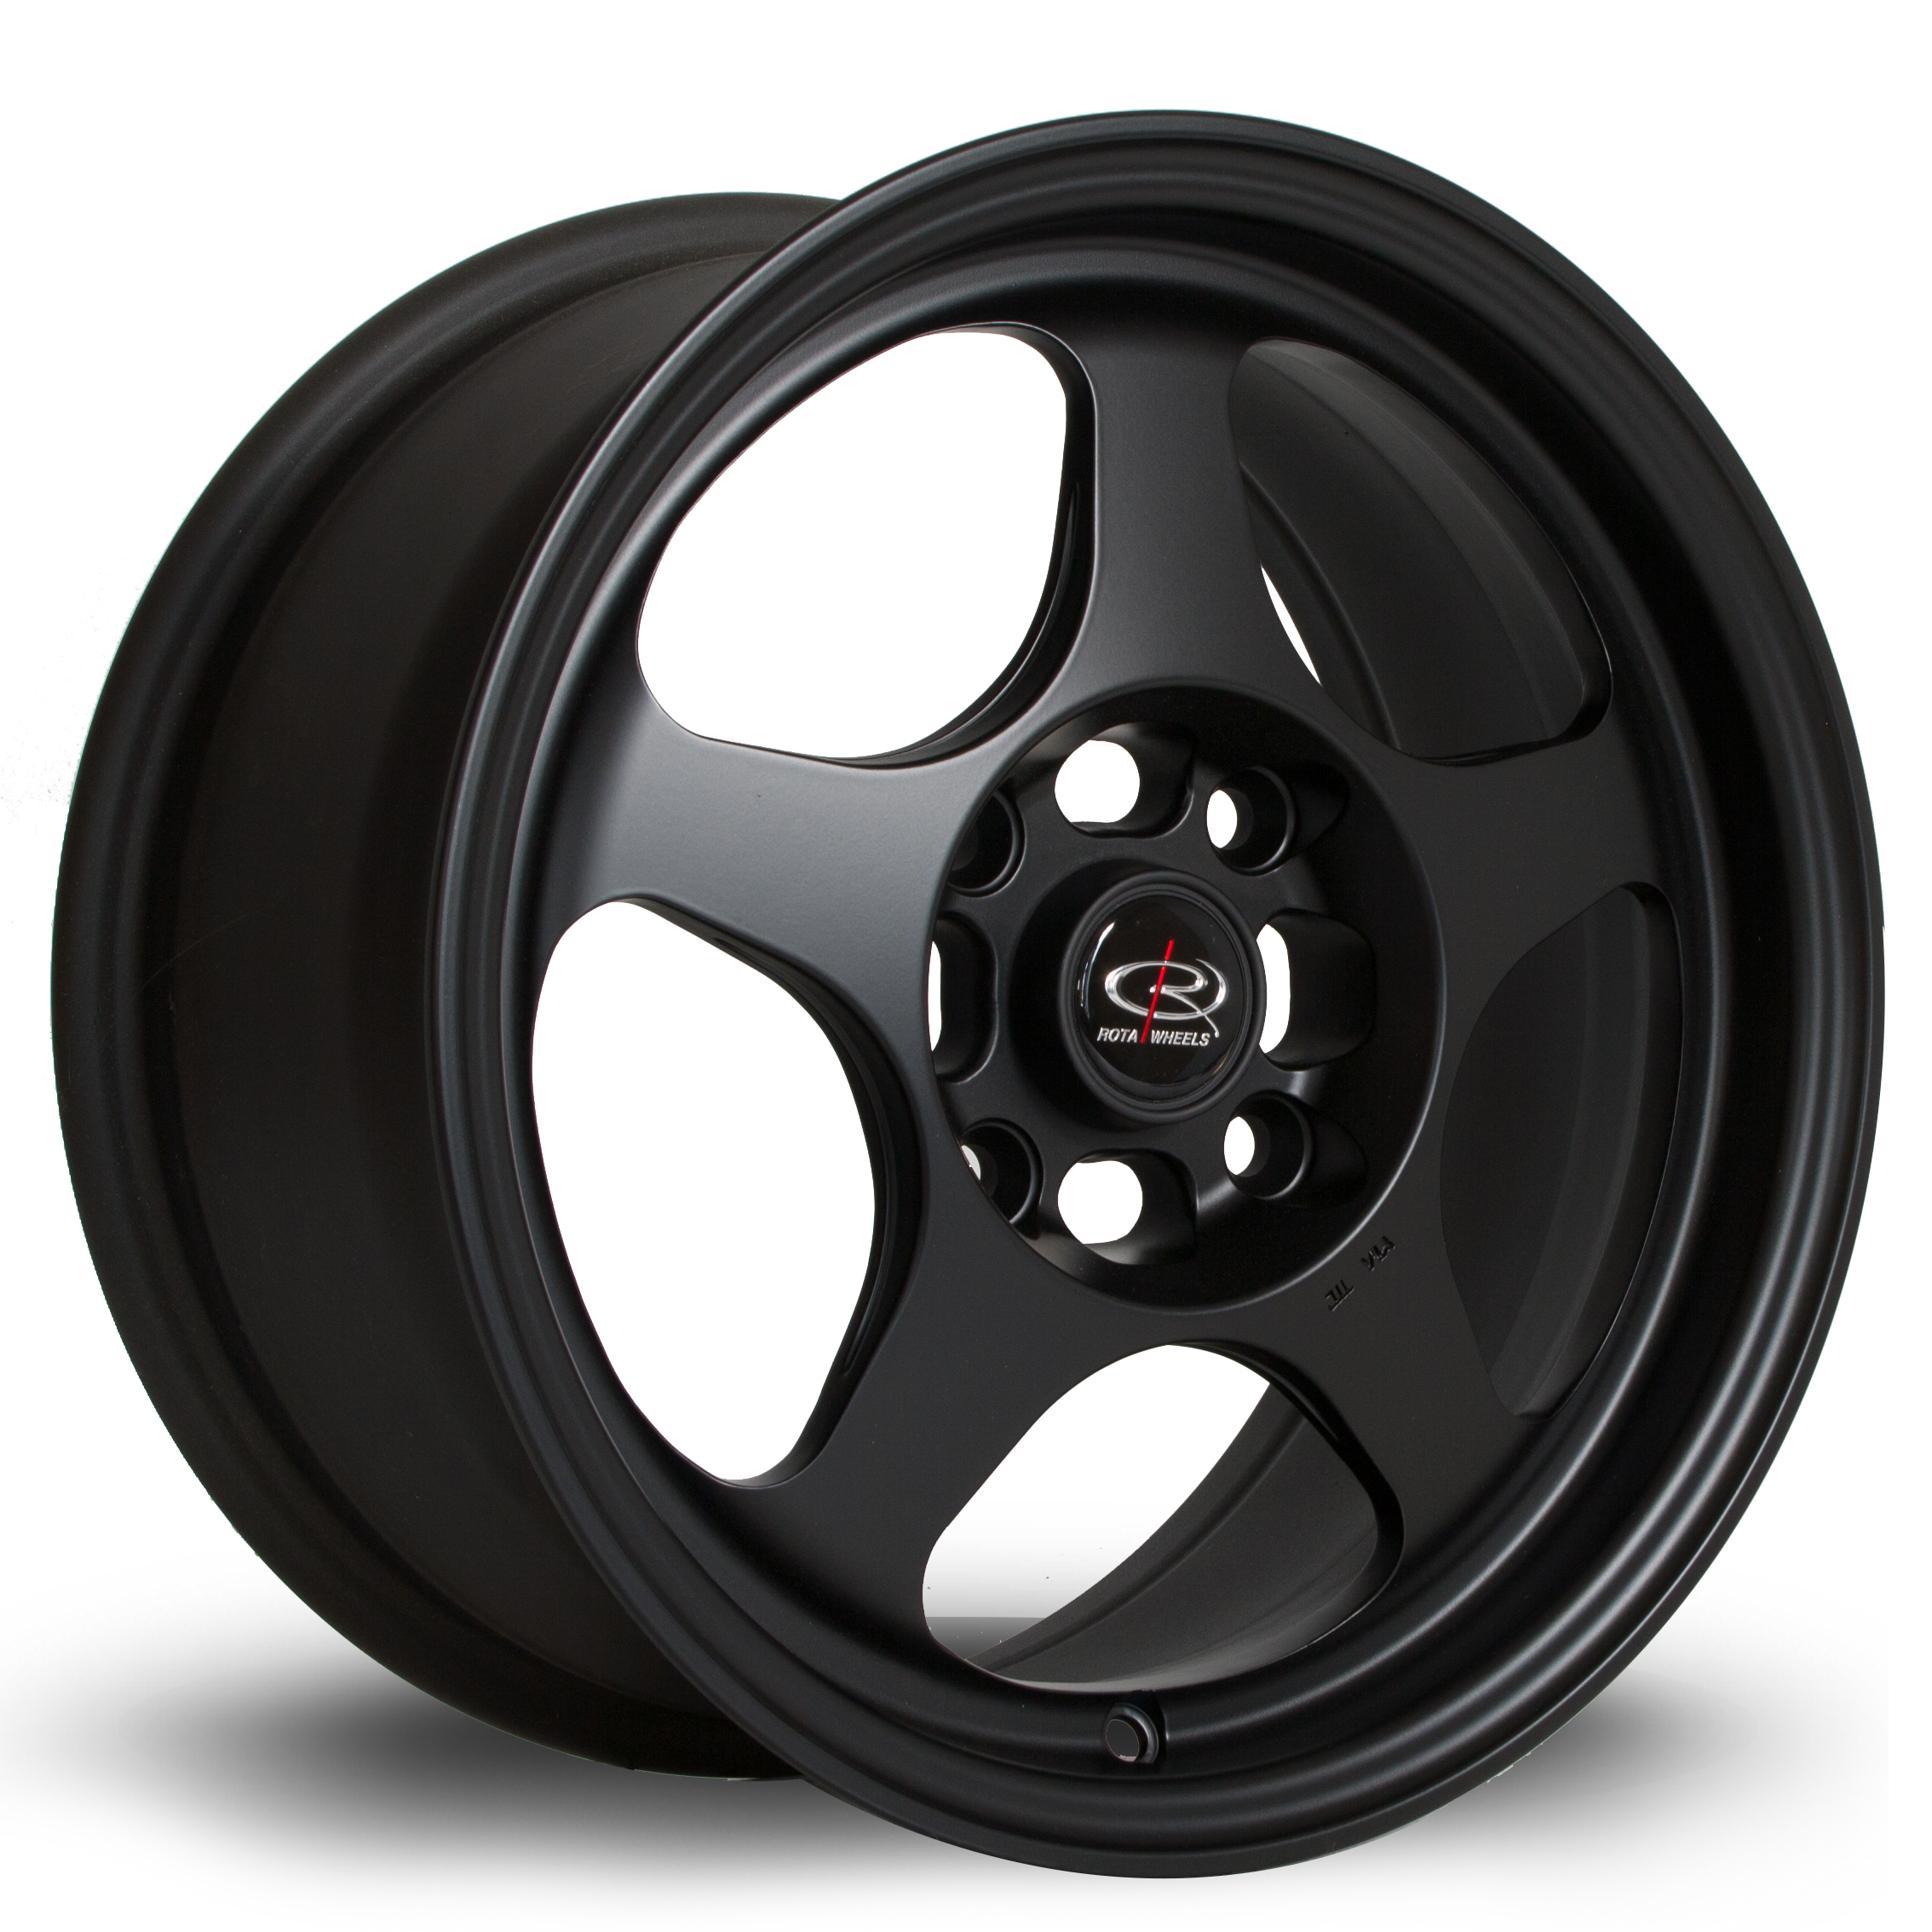 ROTA SLIPSTREAM 7x15 4x108 ET40 FLAT BLACK